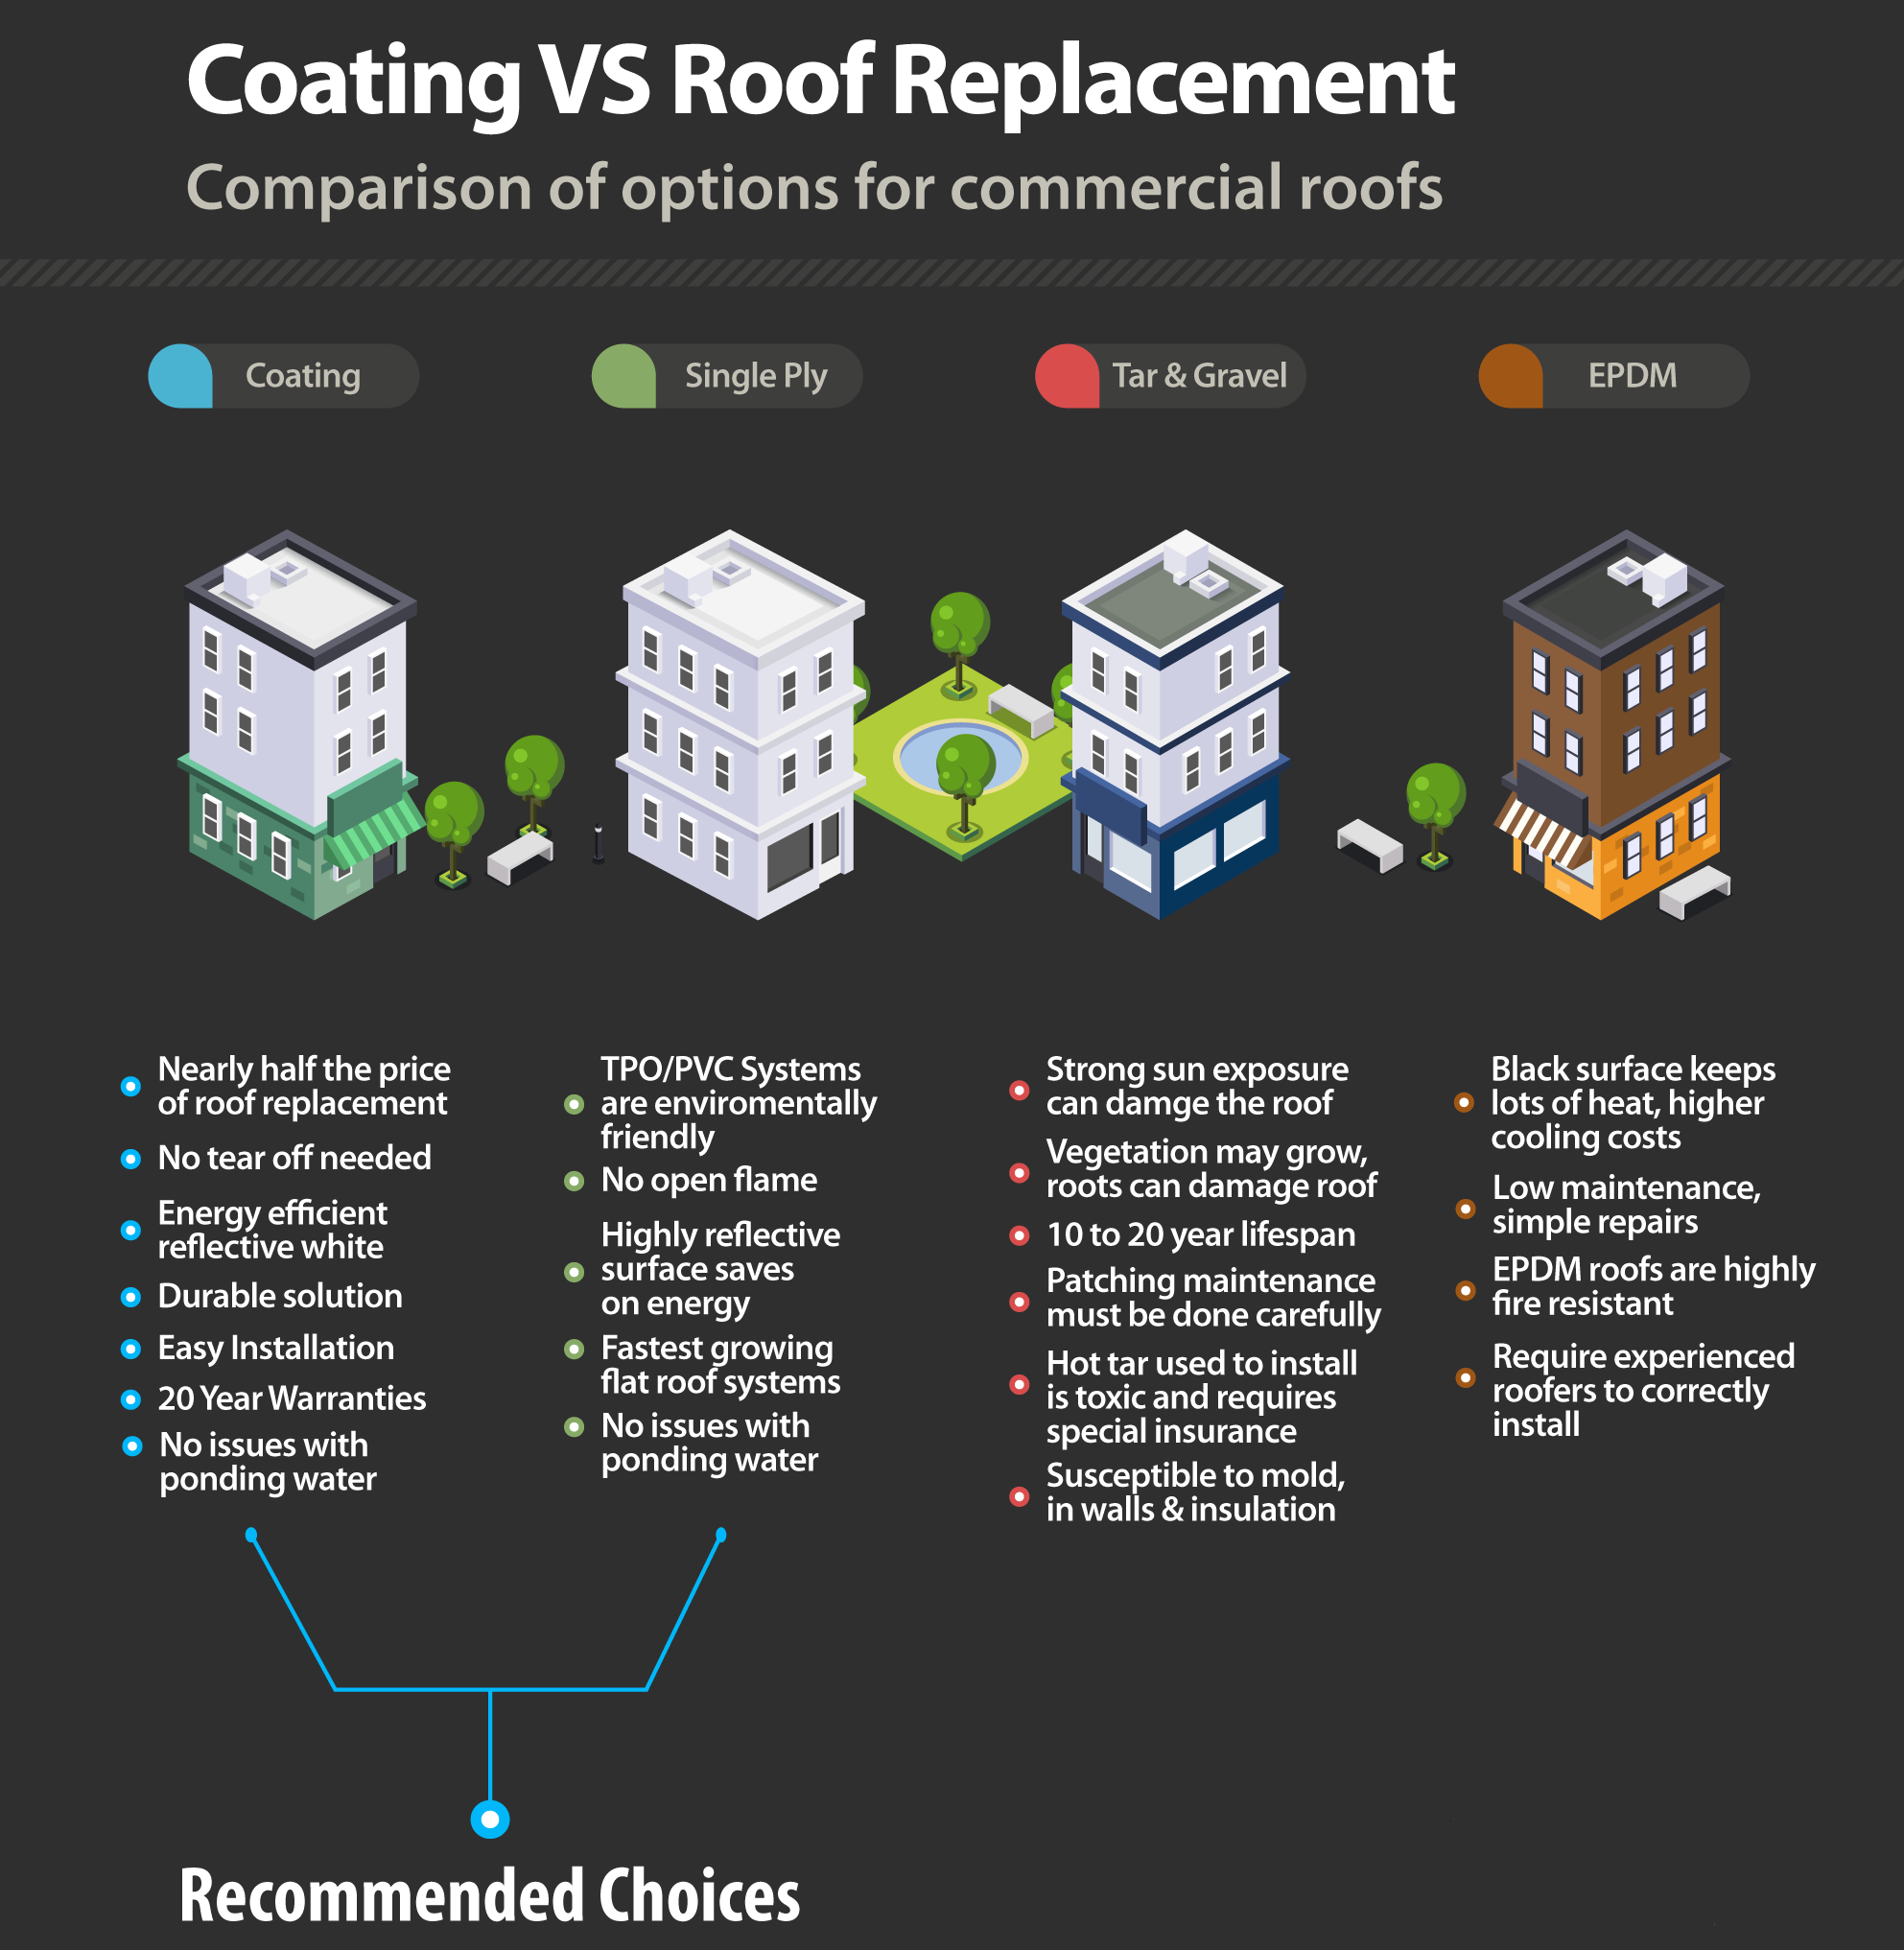 Coating Vs Roof Replacement Roof Coating Single Ply Roofing Roof Damage